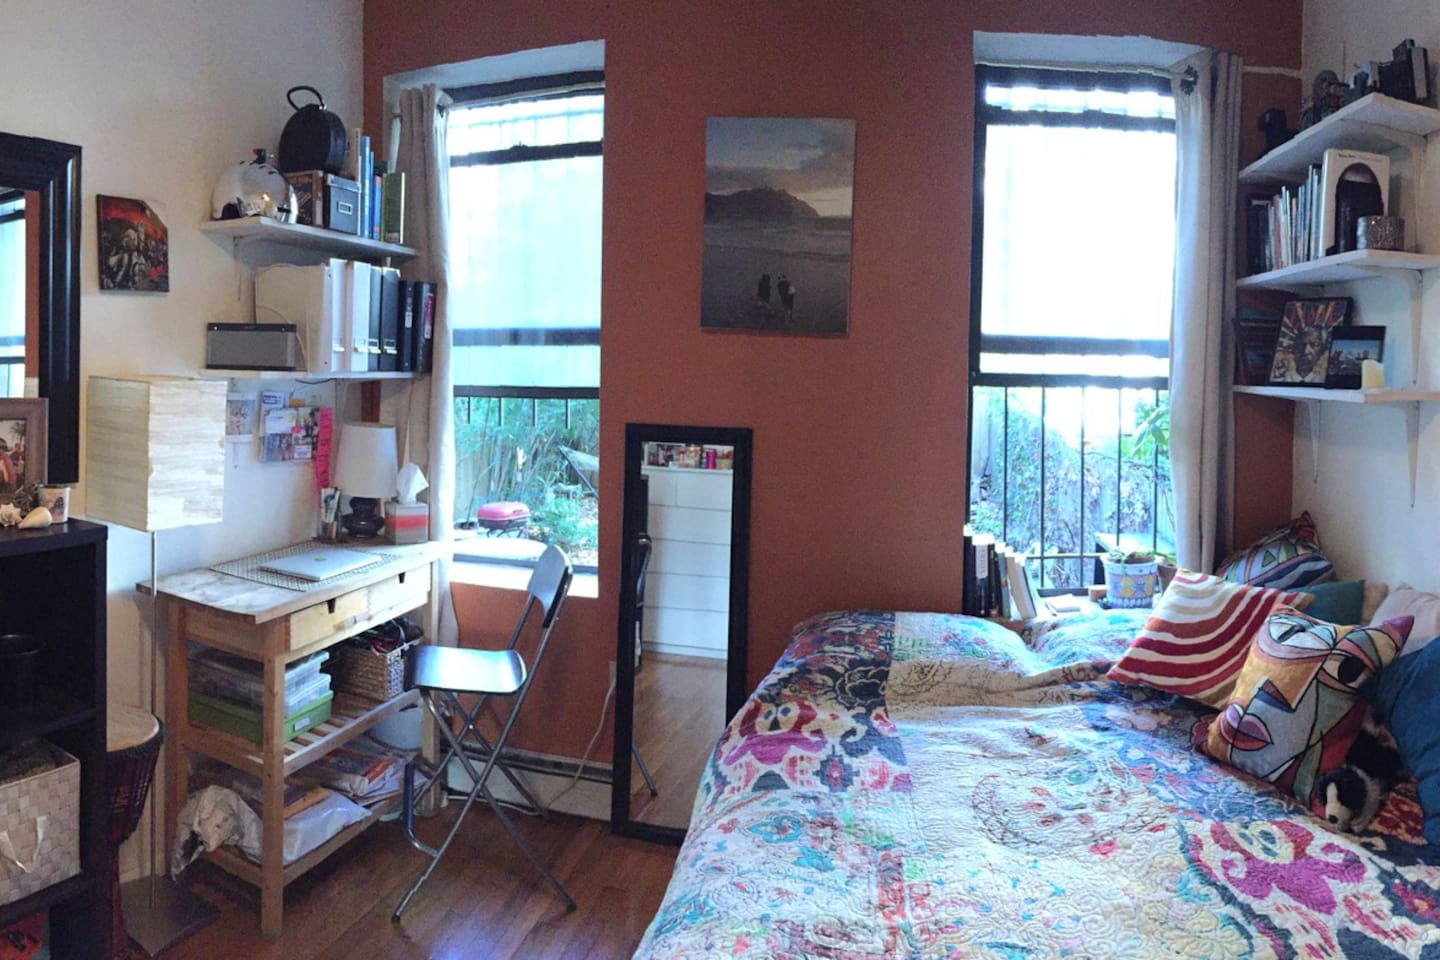 Panorama of bedroom (note: there won't be furniture)